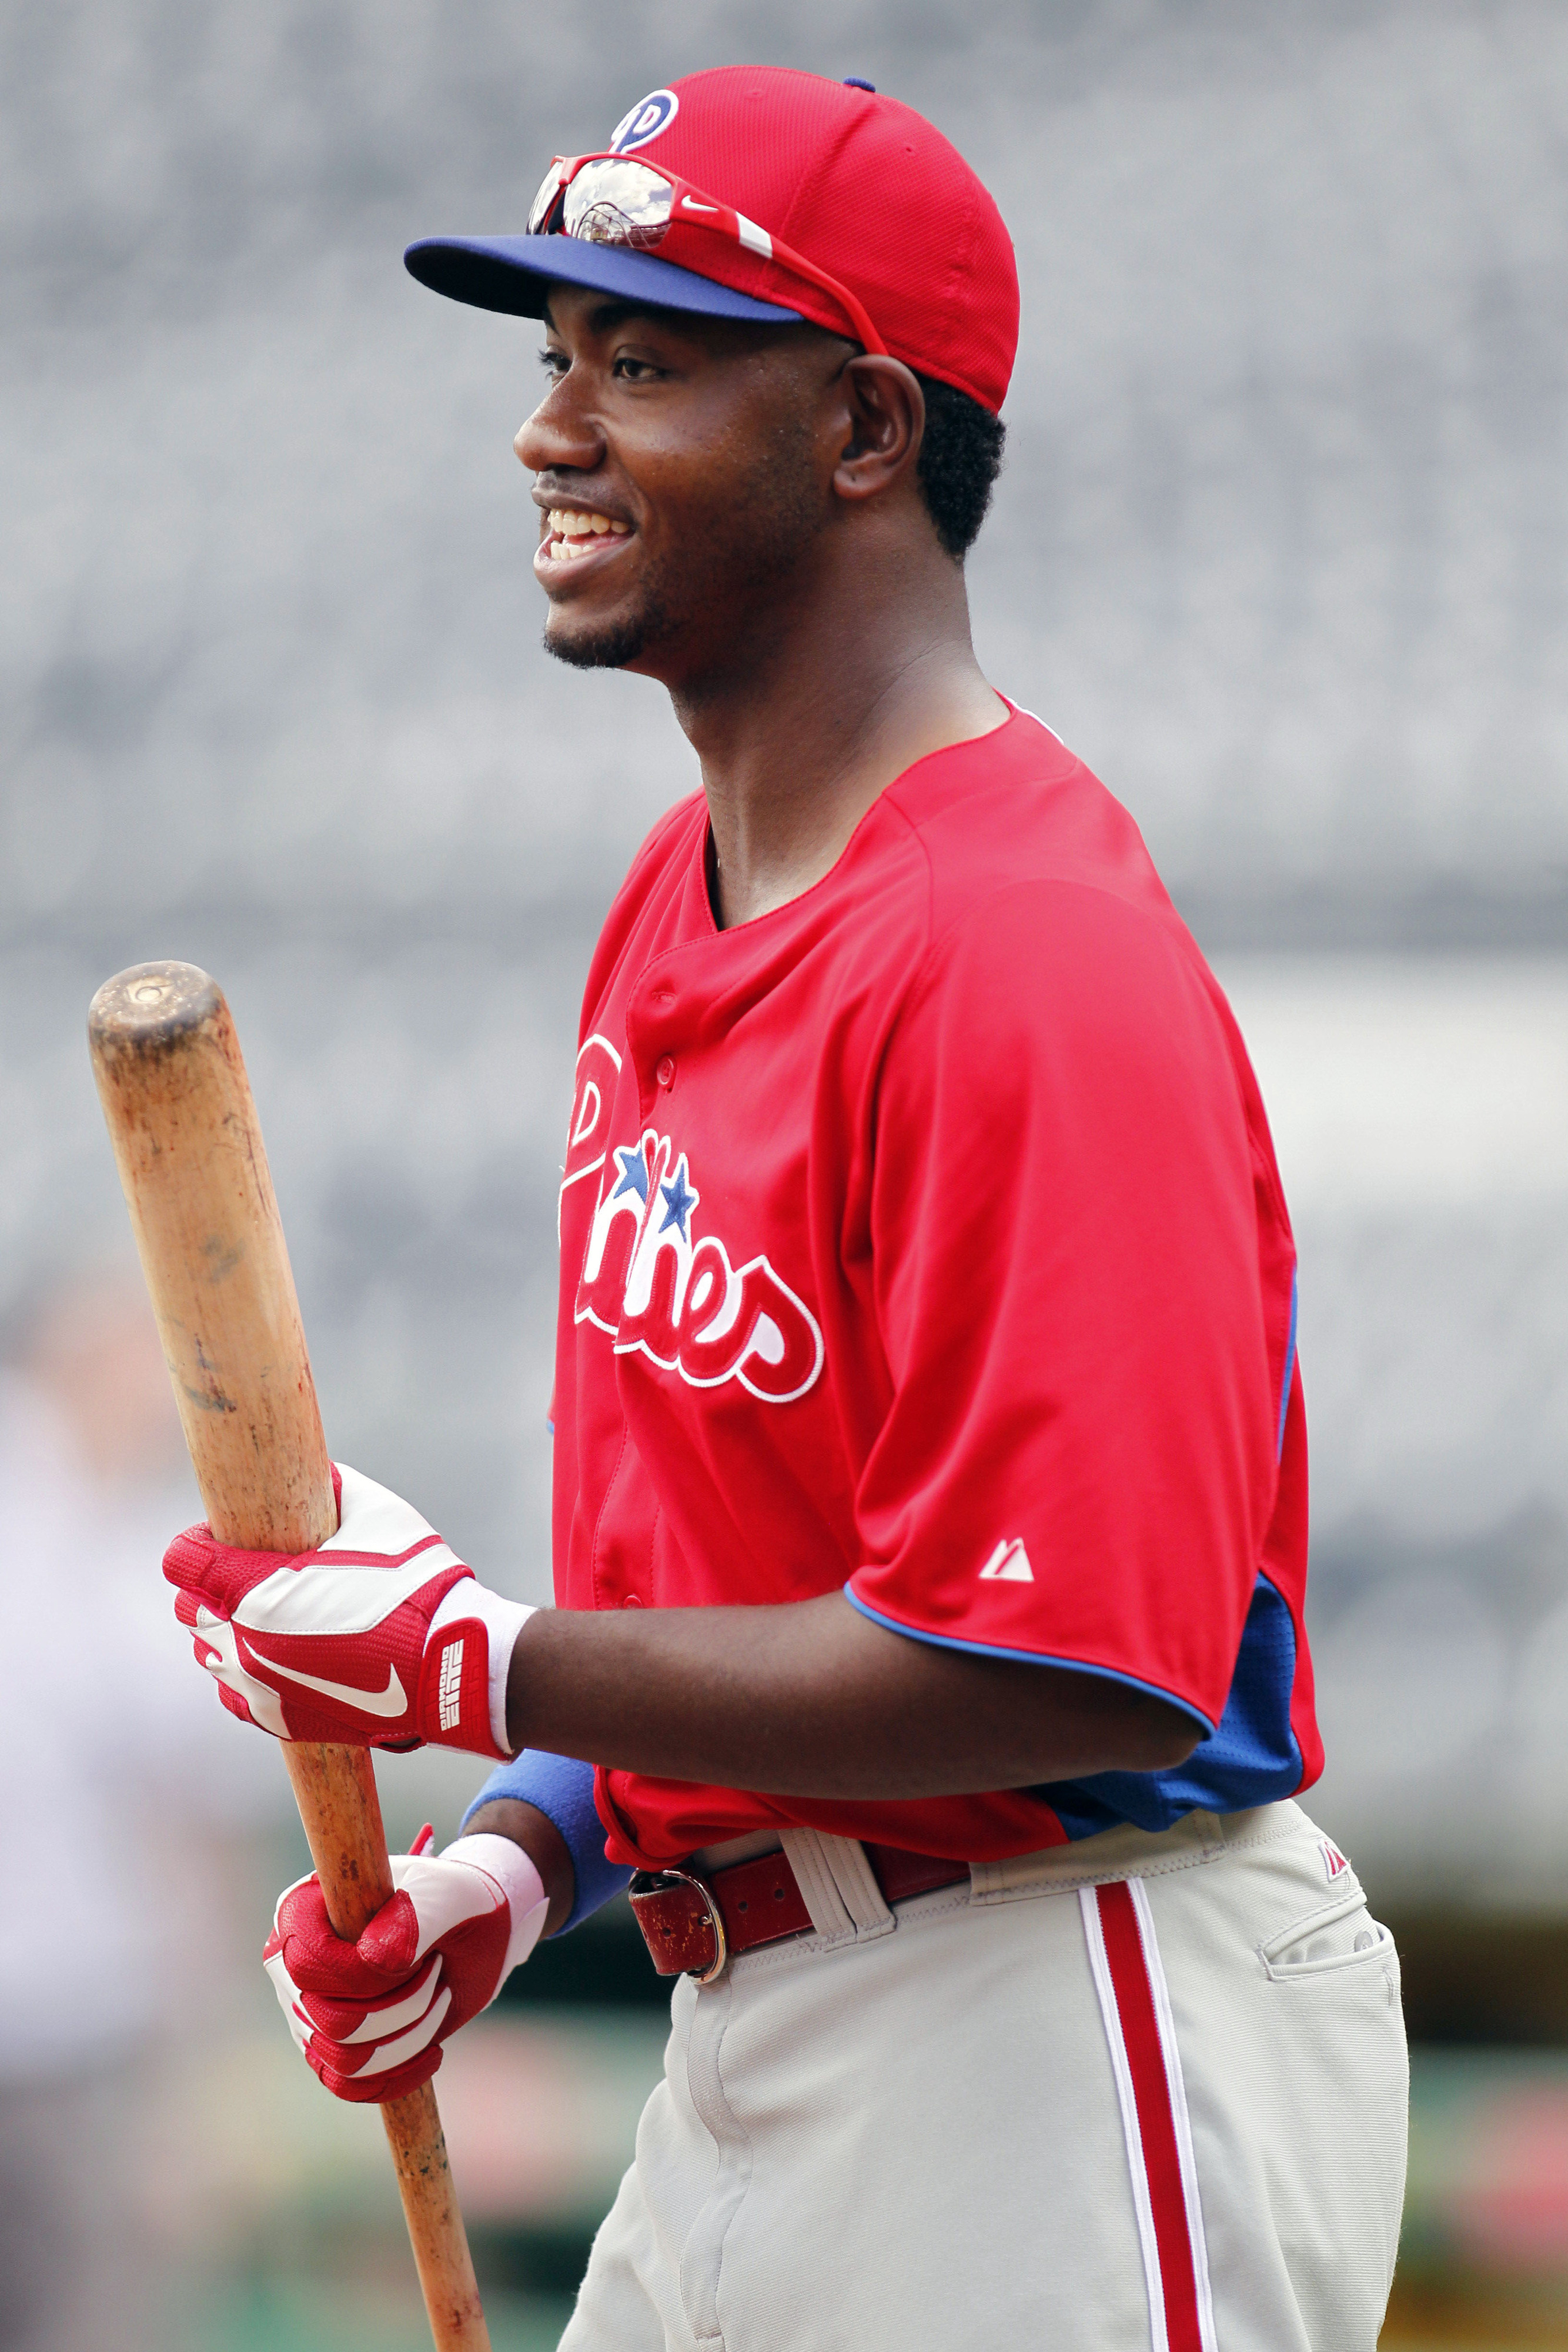 National League All-Star outfielder Domonic Brown